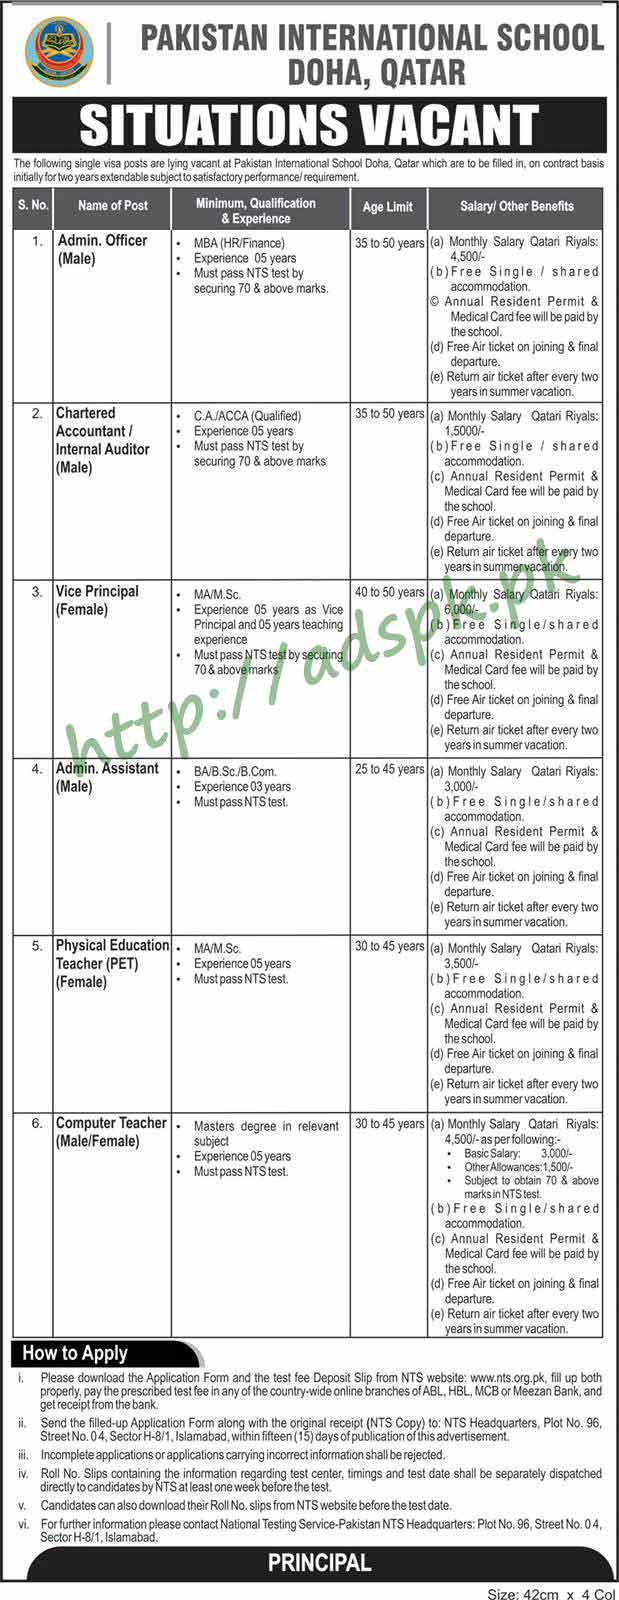 Pakistan International School Doha Qatar Jobs 2018 NTS